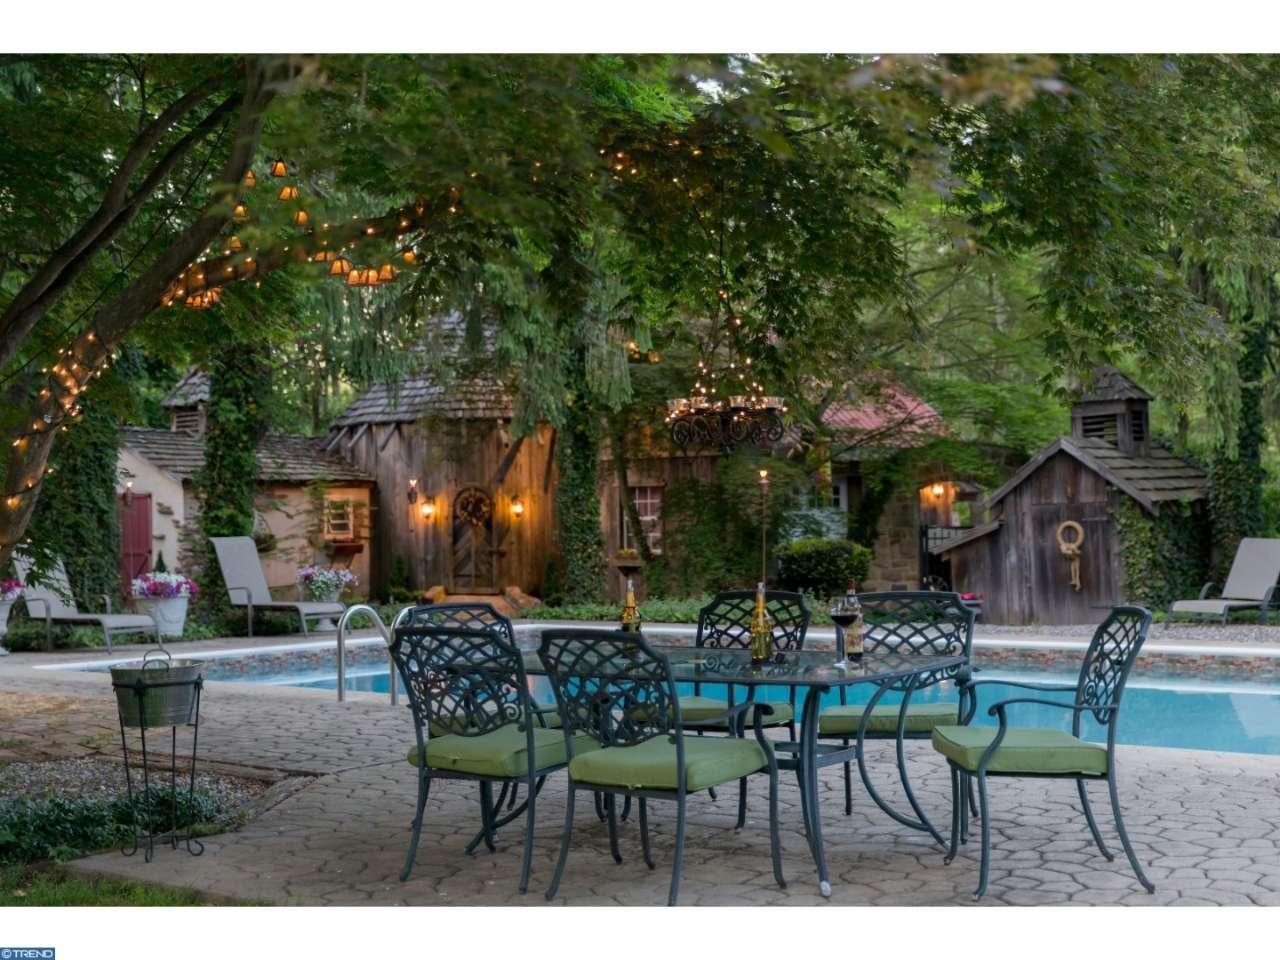 The Leap Year Barn house has a storybook setting. I especially like the setting here around the pool